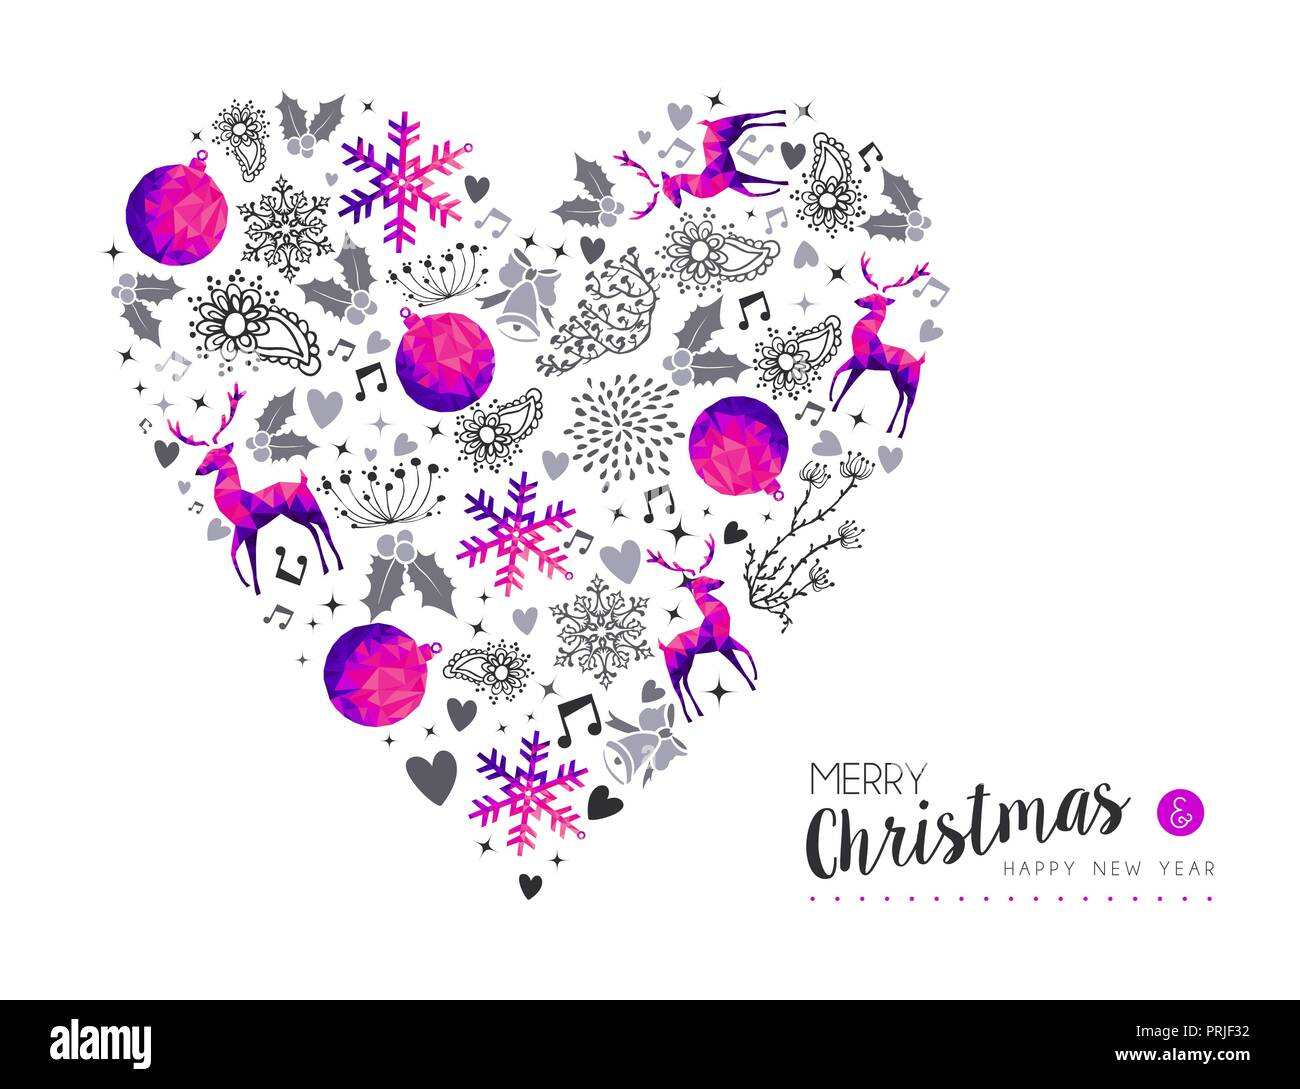 merry christmas happy new year greeting card love design pink low poly reindeer and xmas season decoration with hand drawn holiday nature shapes eps